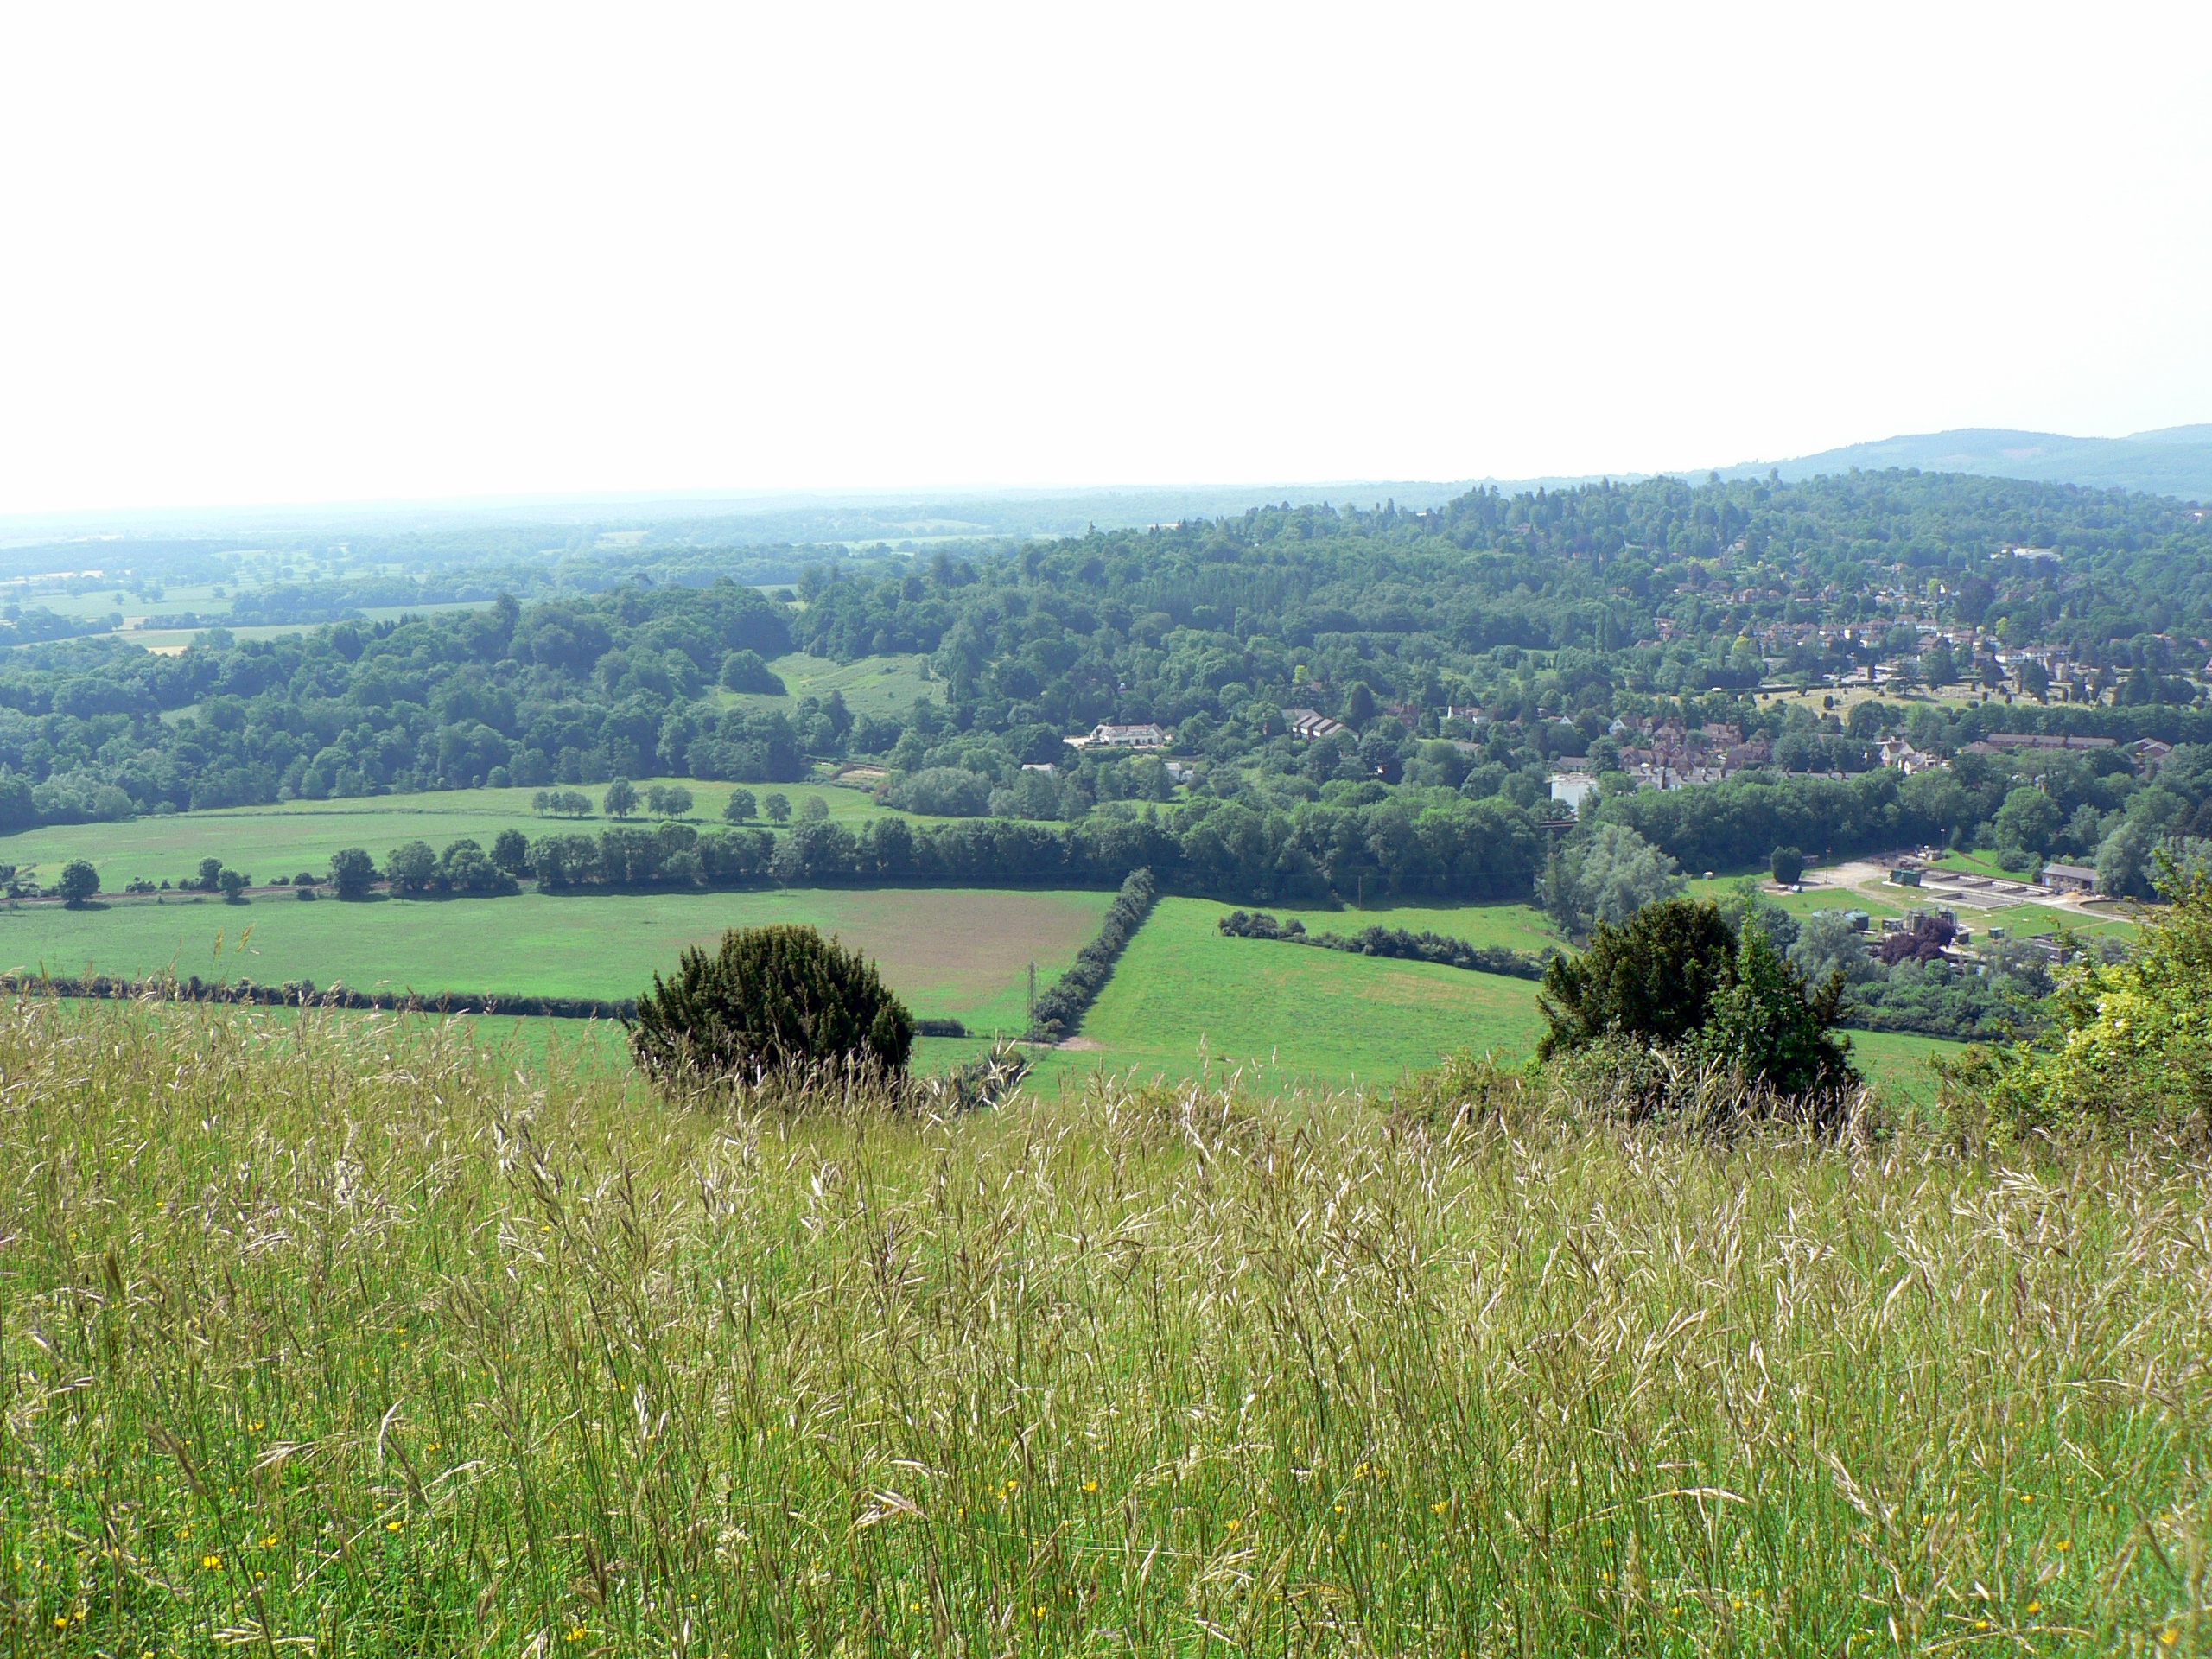 The view from Box Hill